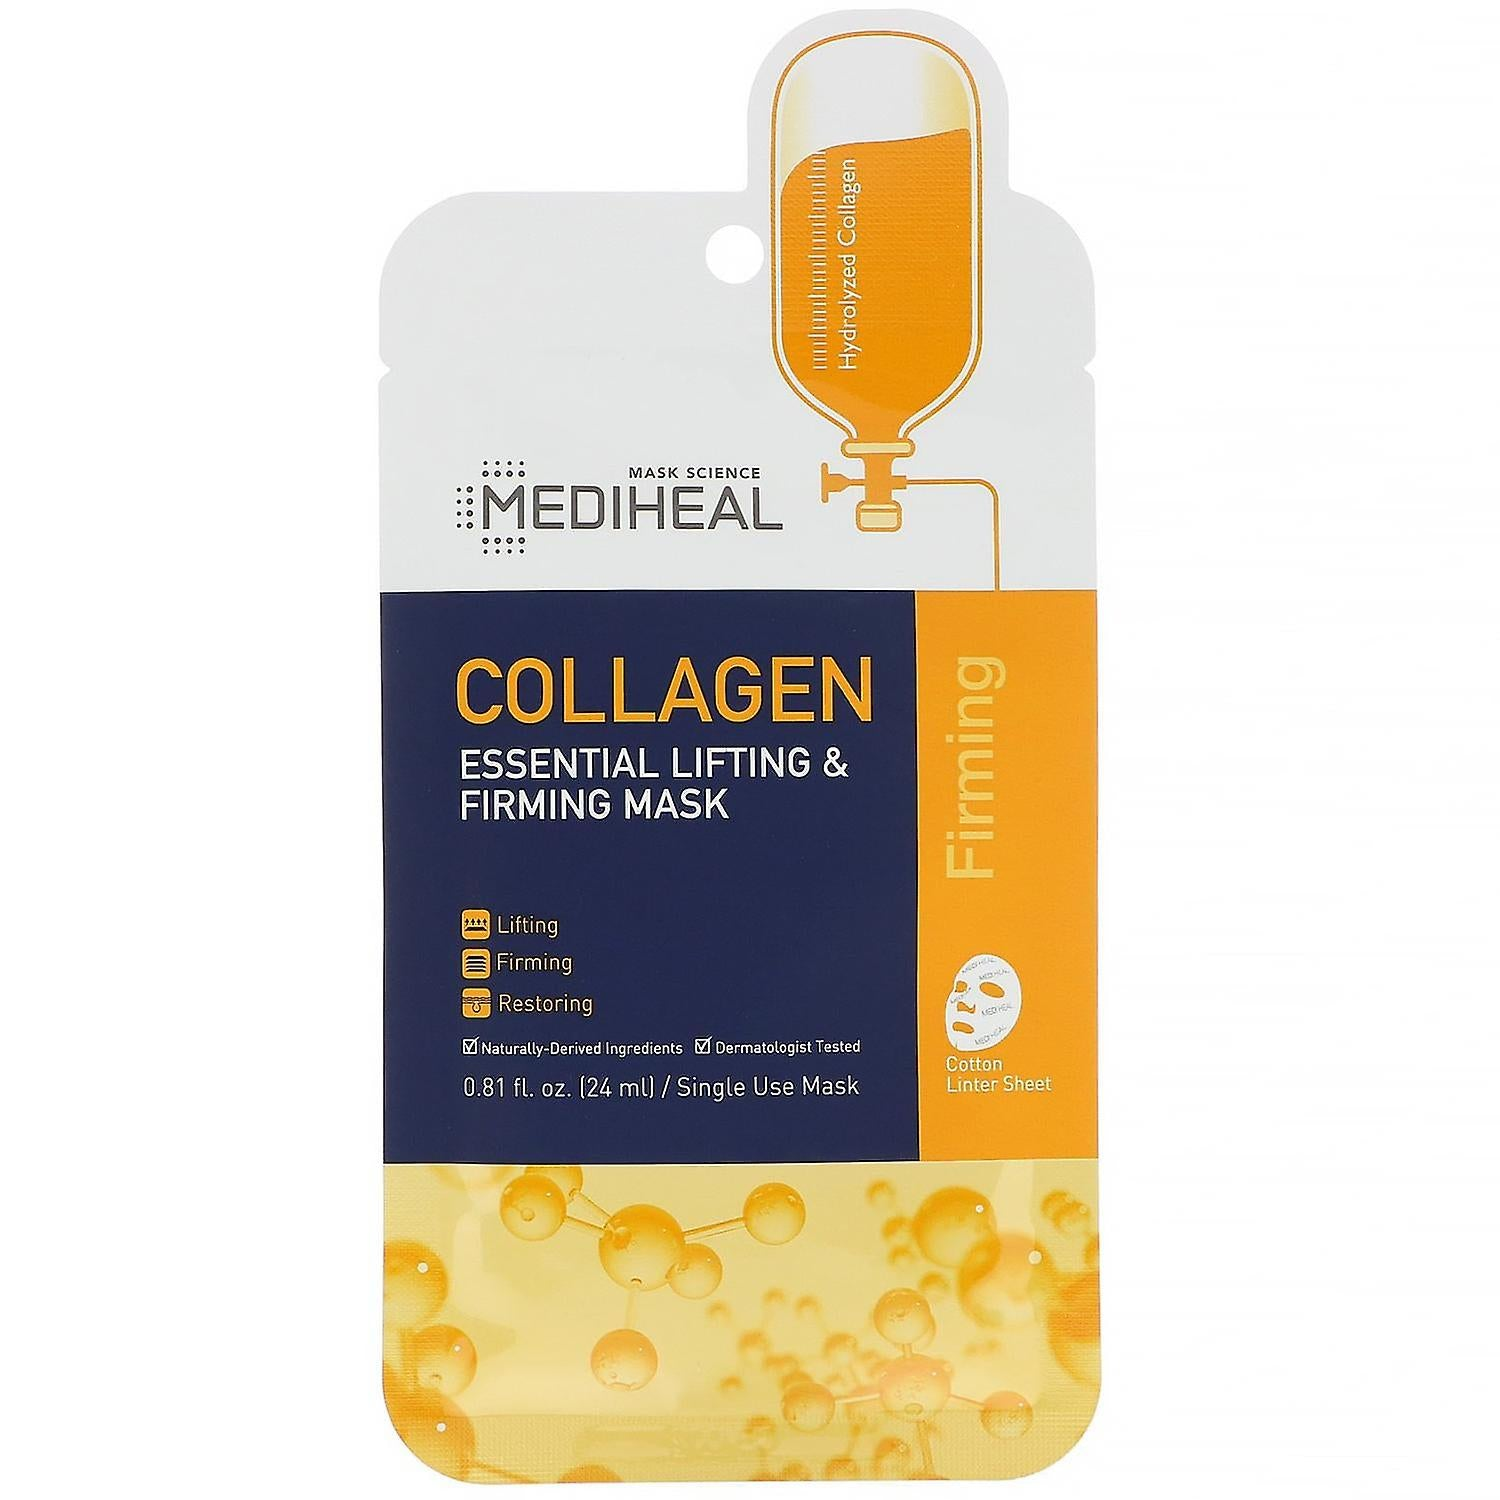 Collagen Essential Lifting & Firming Mask Mediheal